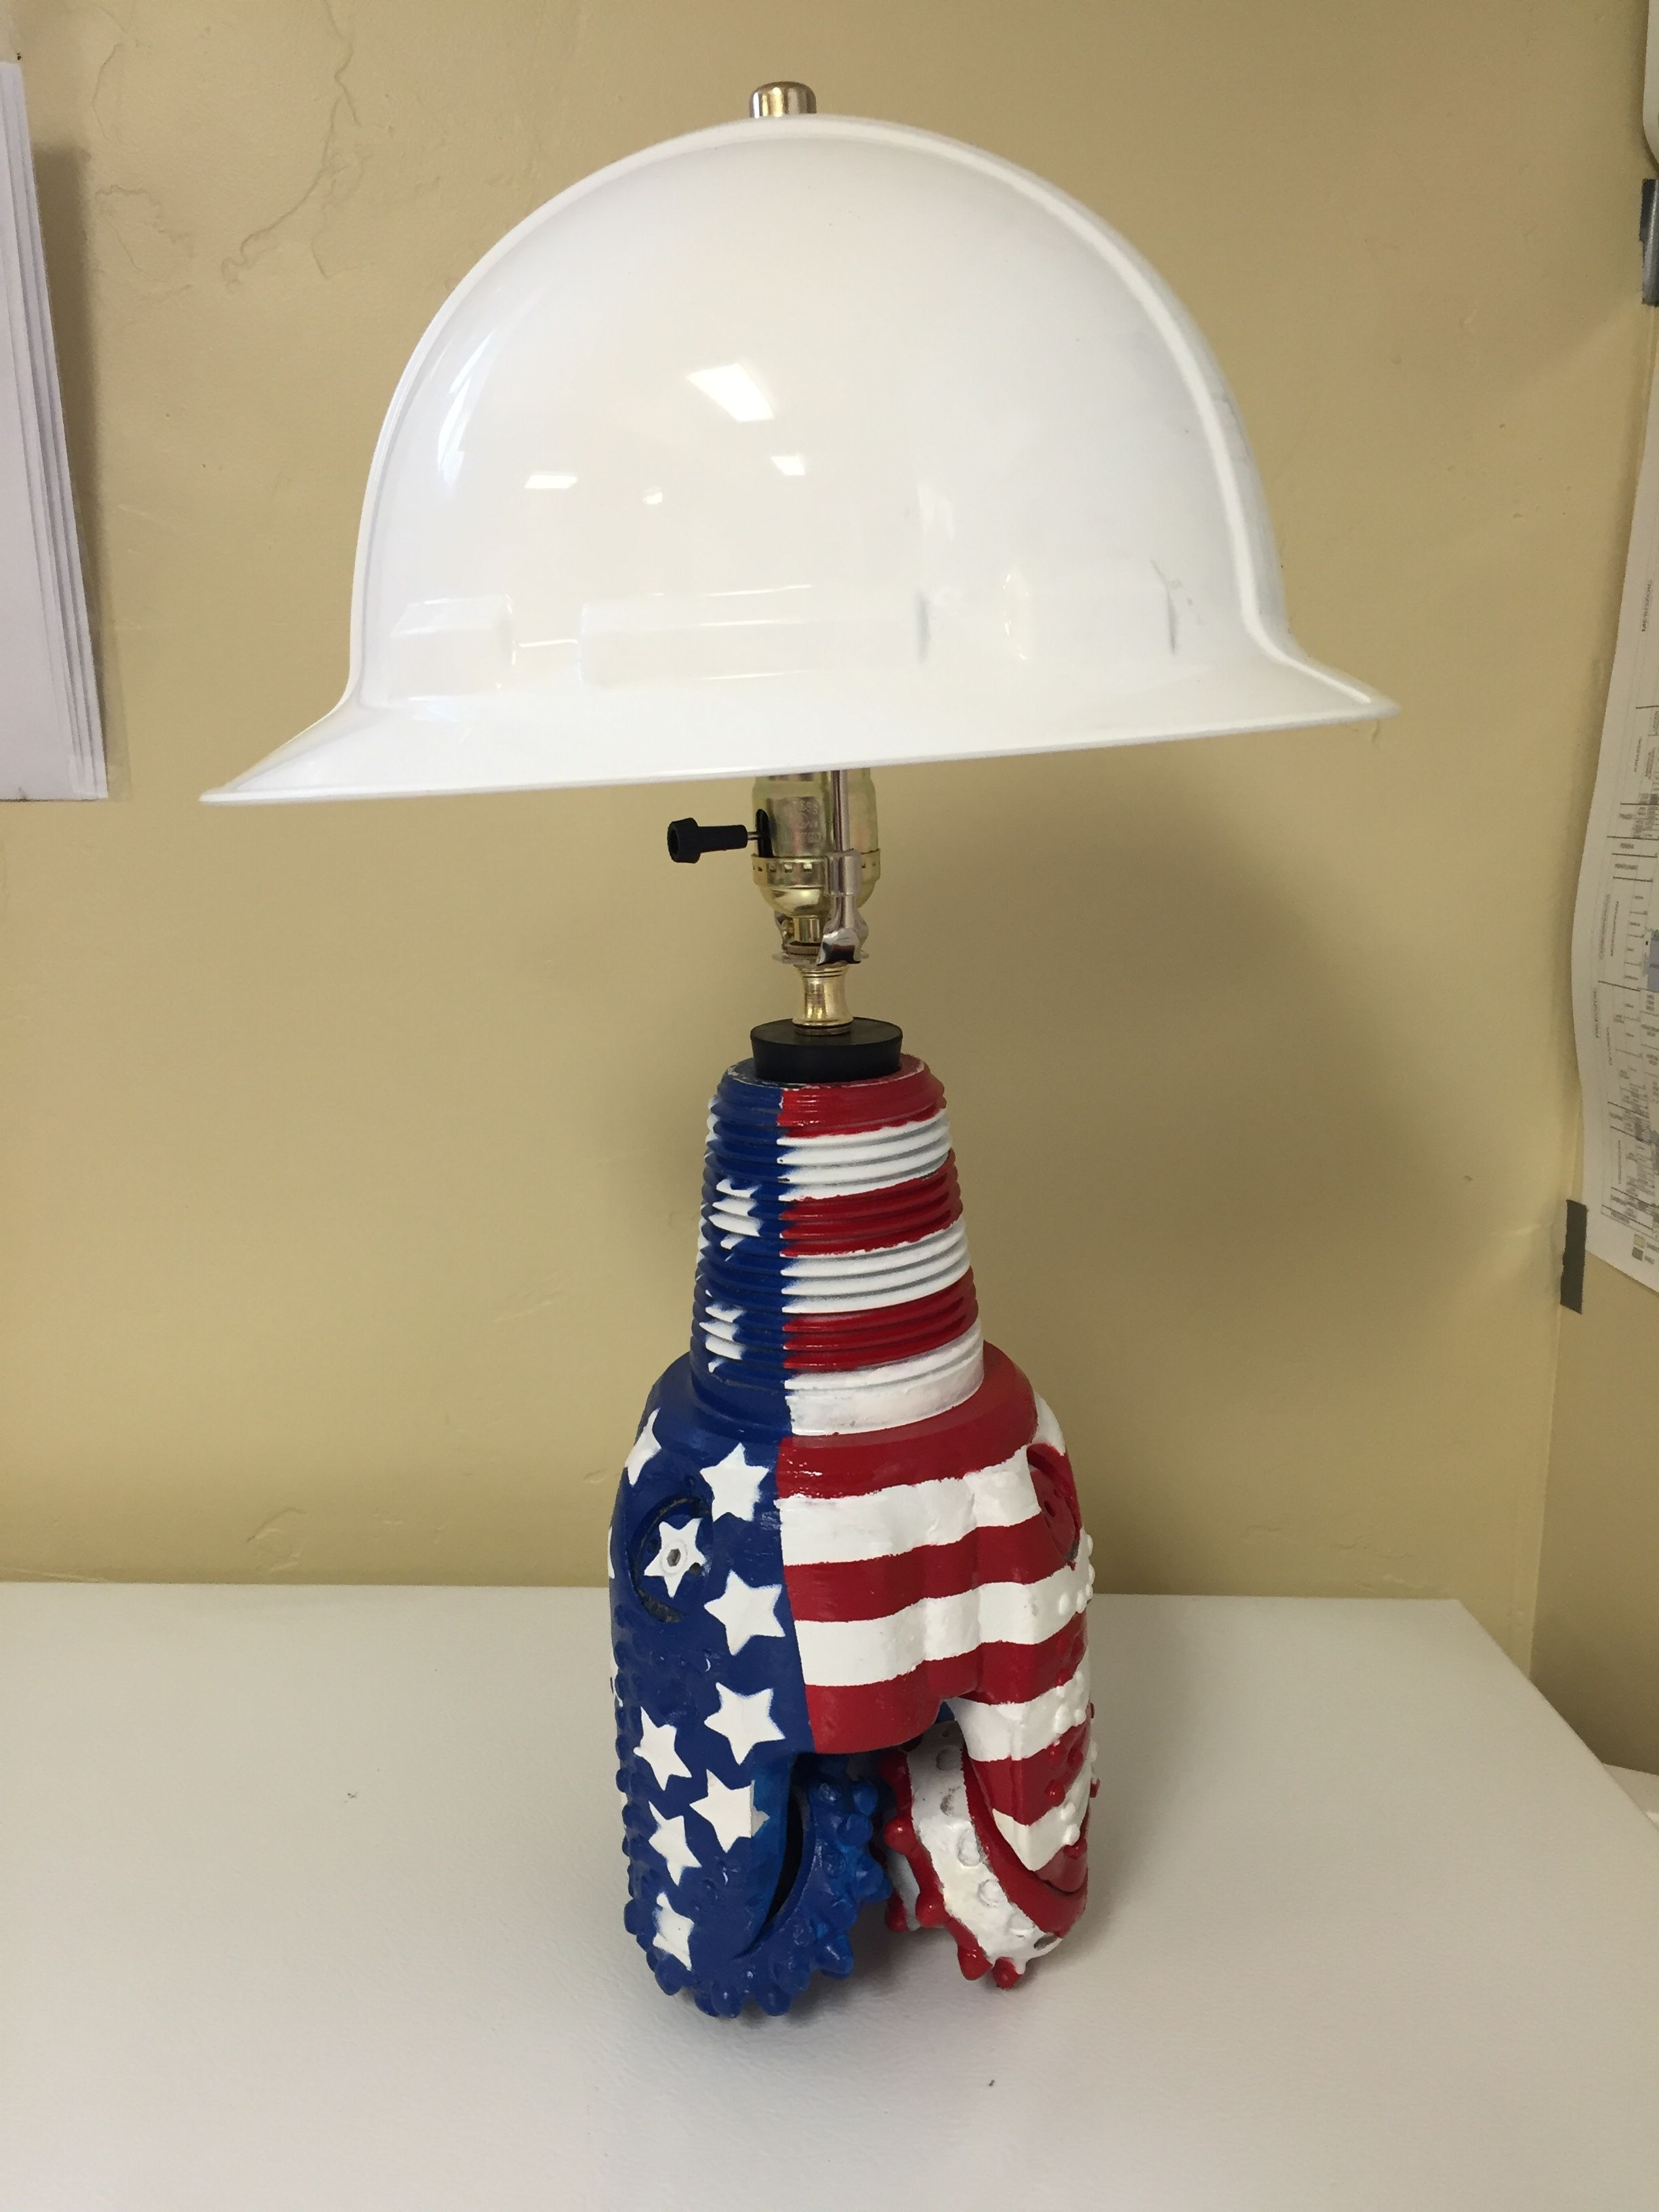 Rotary Tricone Drill Bit Lamp With Hard Hat And American Flag Paint Job Oilfield Art Steampunk Lighting American Flag Painting Steampunk Lamp